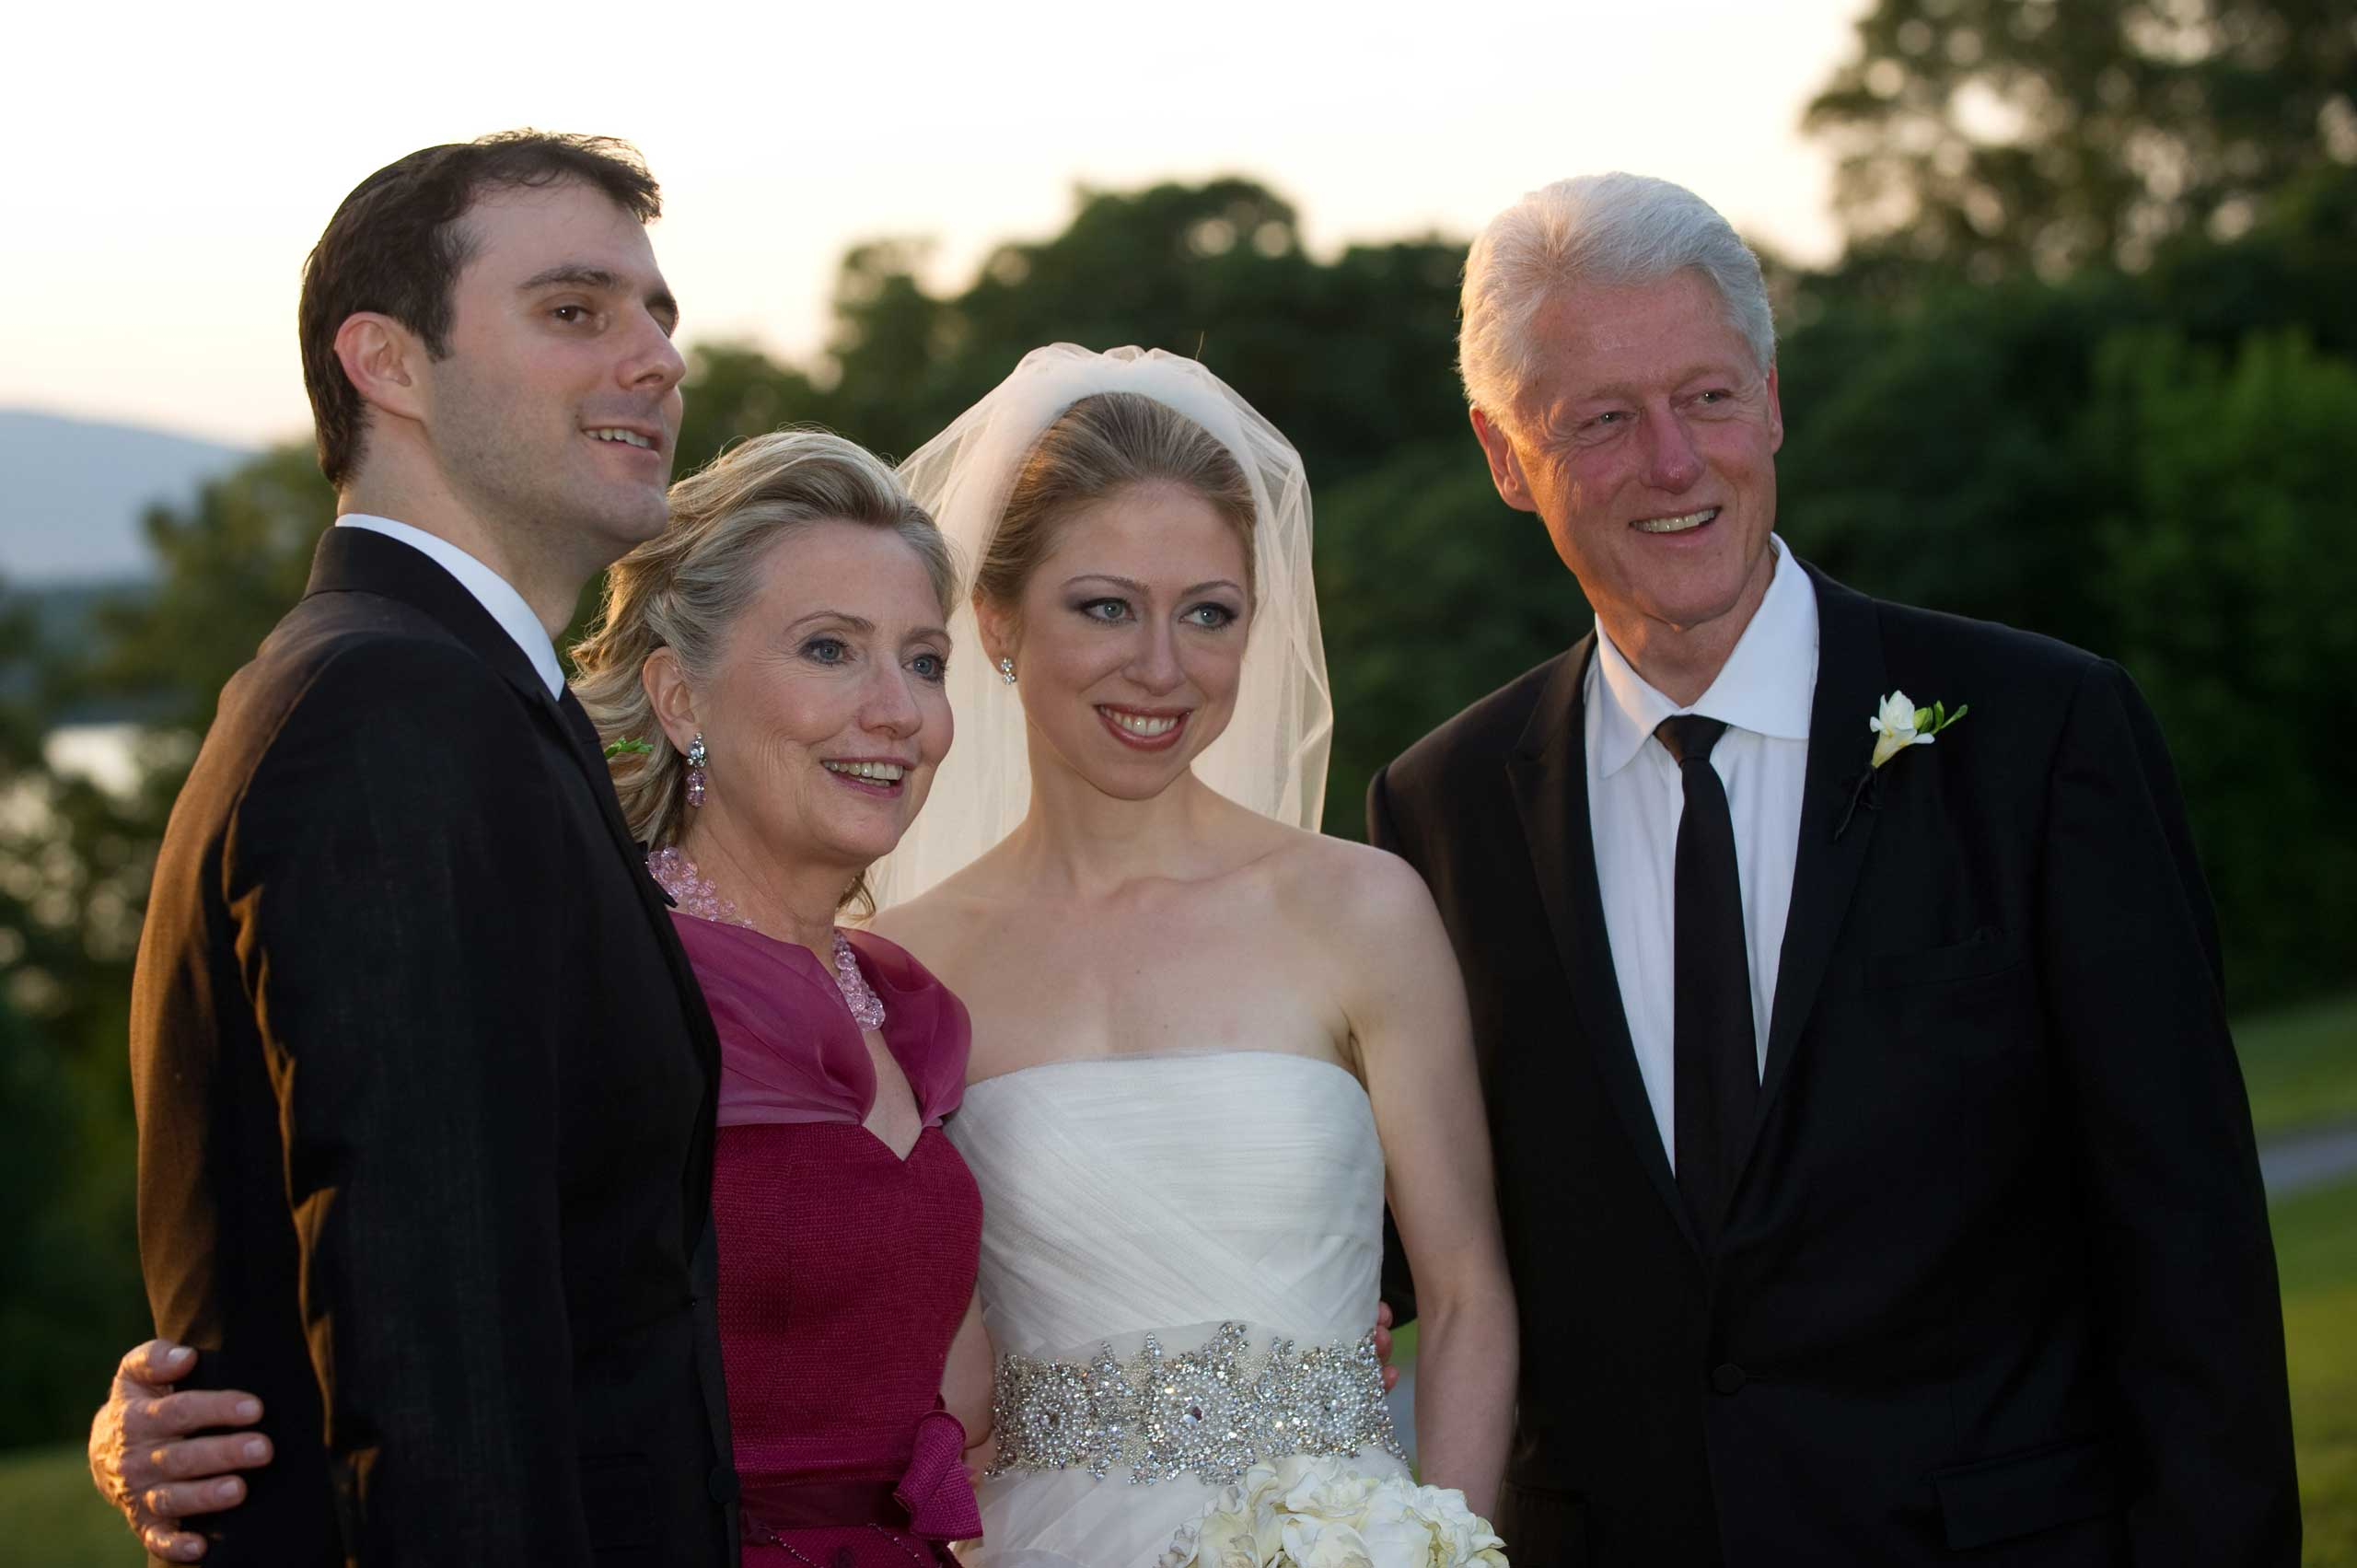 Born in 1980, Bill and Hillary's daughter Chelsea is married to investment banker Marc Mezvinsky, the son of two former members of Congress. On September 27, 2014, they added another member to the Clinton dynasty: their daughter, Charlotte Clinton Mezvinsky